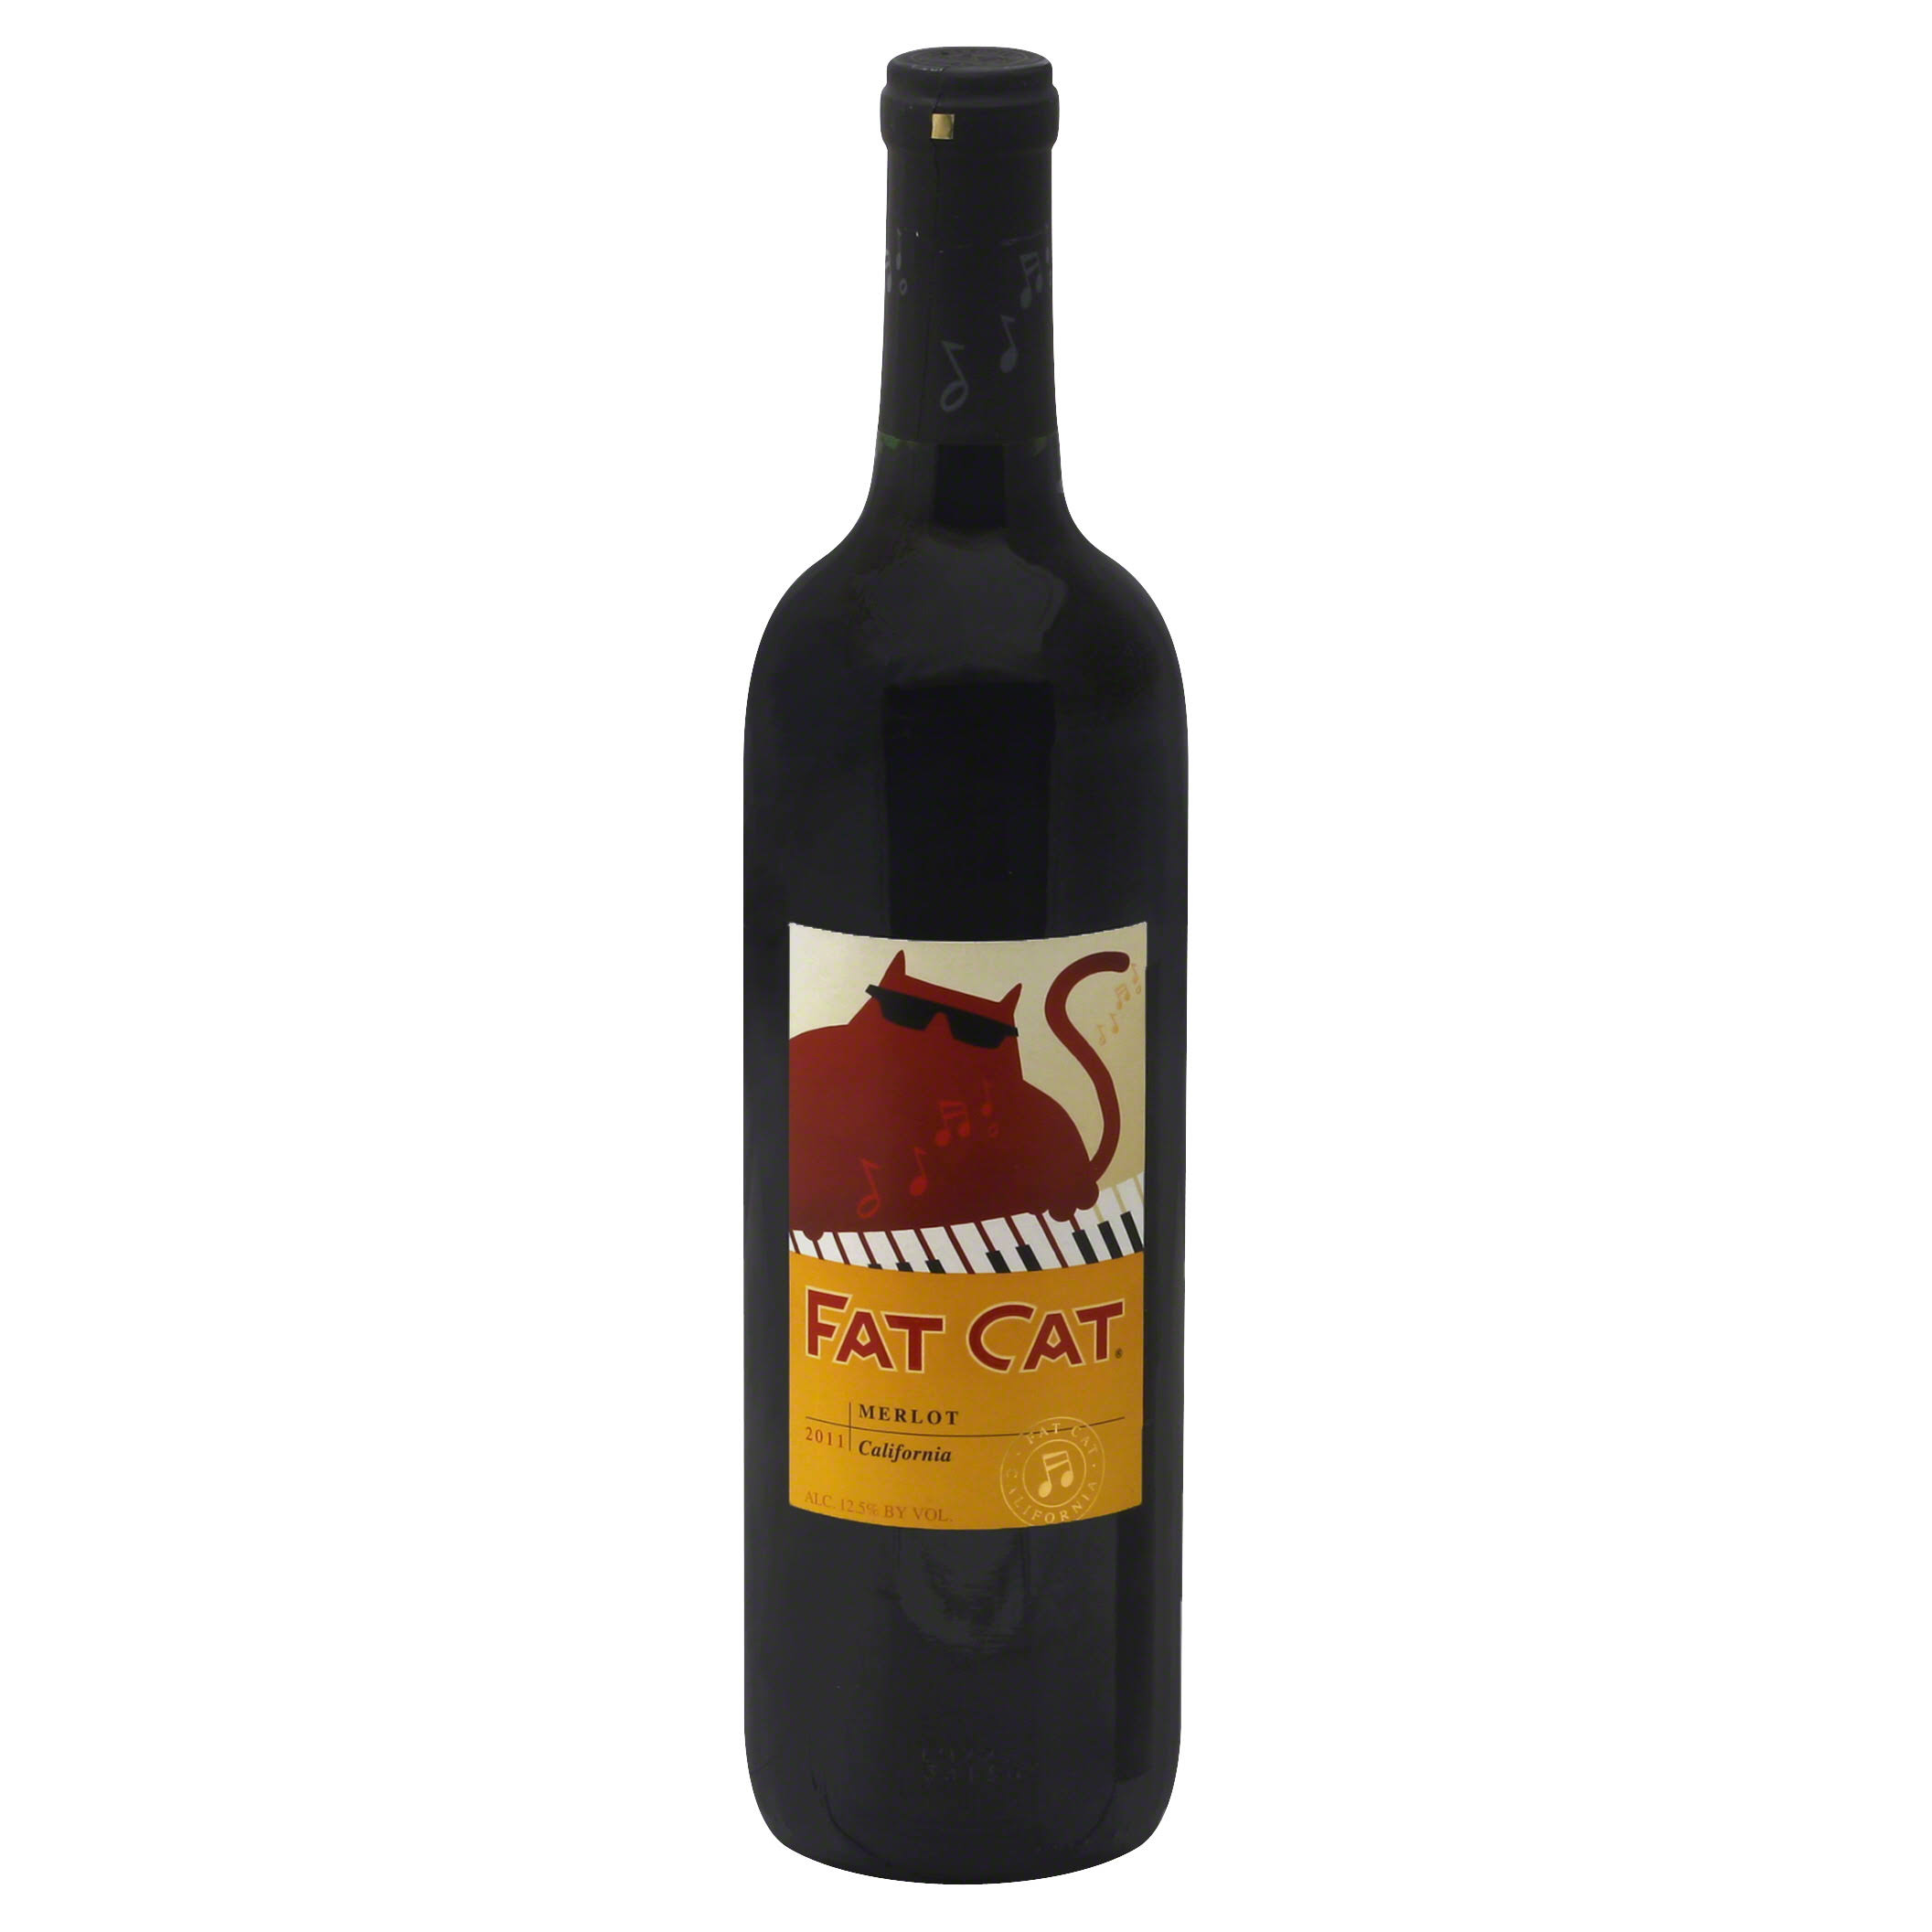 Fat Cat Merlot, California, 2011 - 750 ml